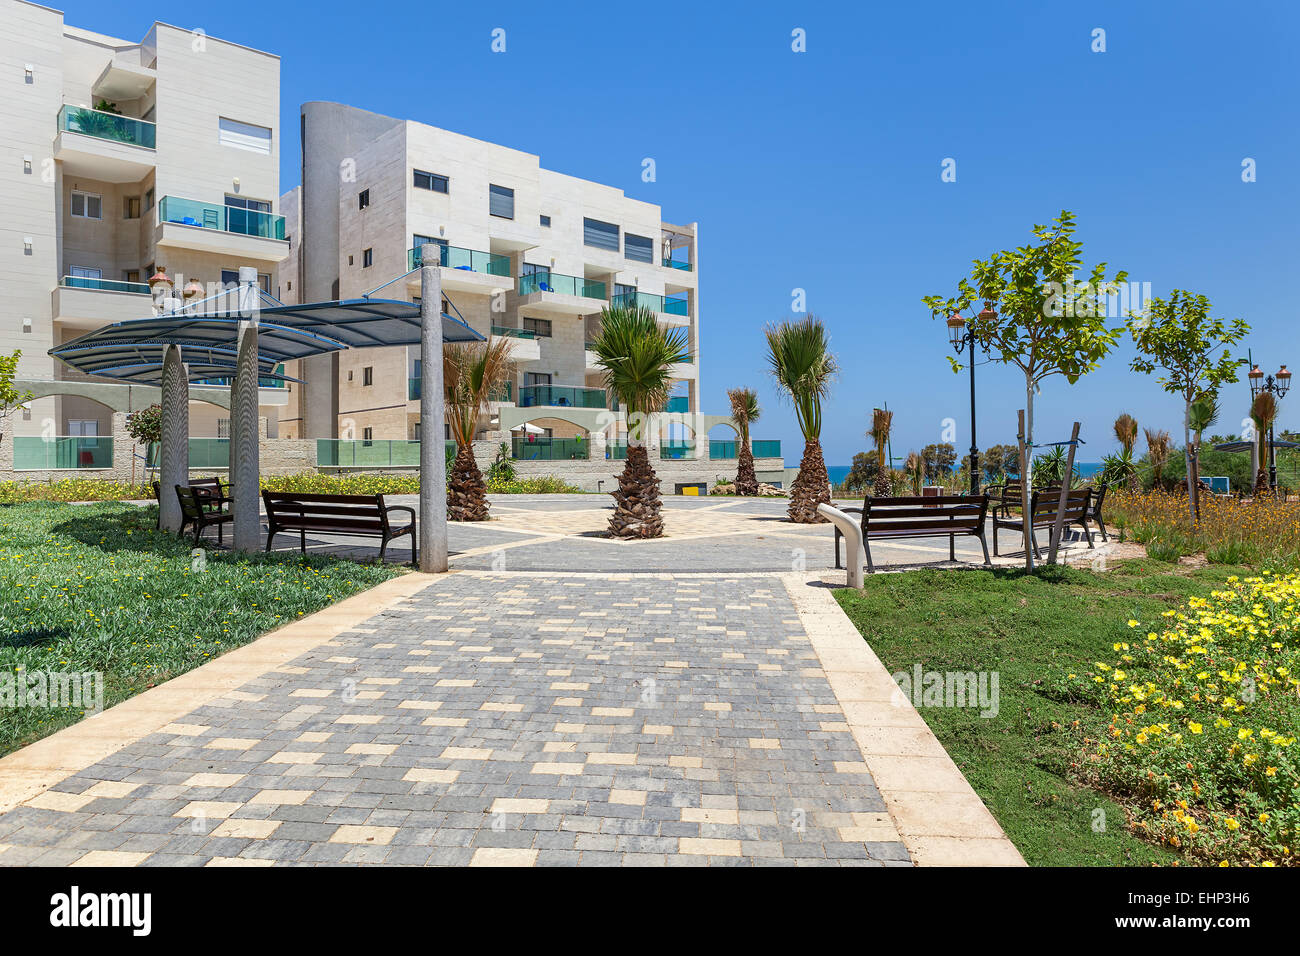 Small city square with palms and benches near complex of modern residential buildings in Ashqelon, Israel. - Stock Image